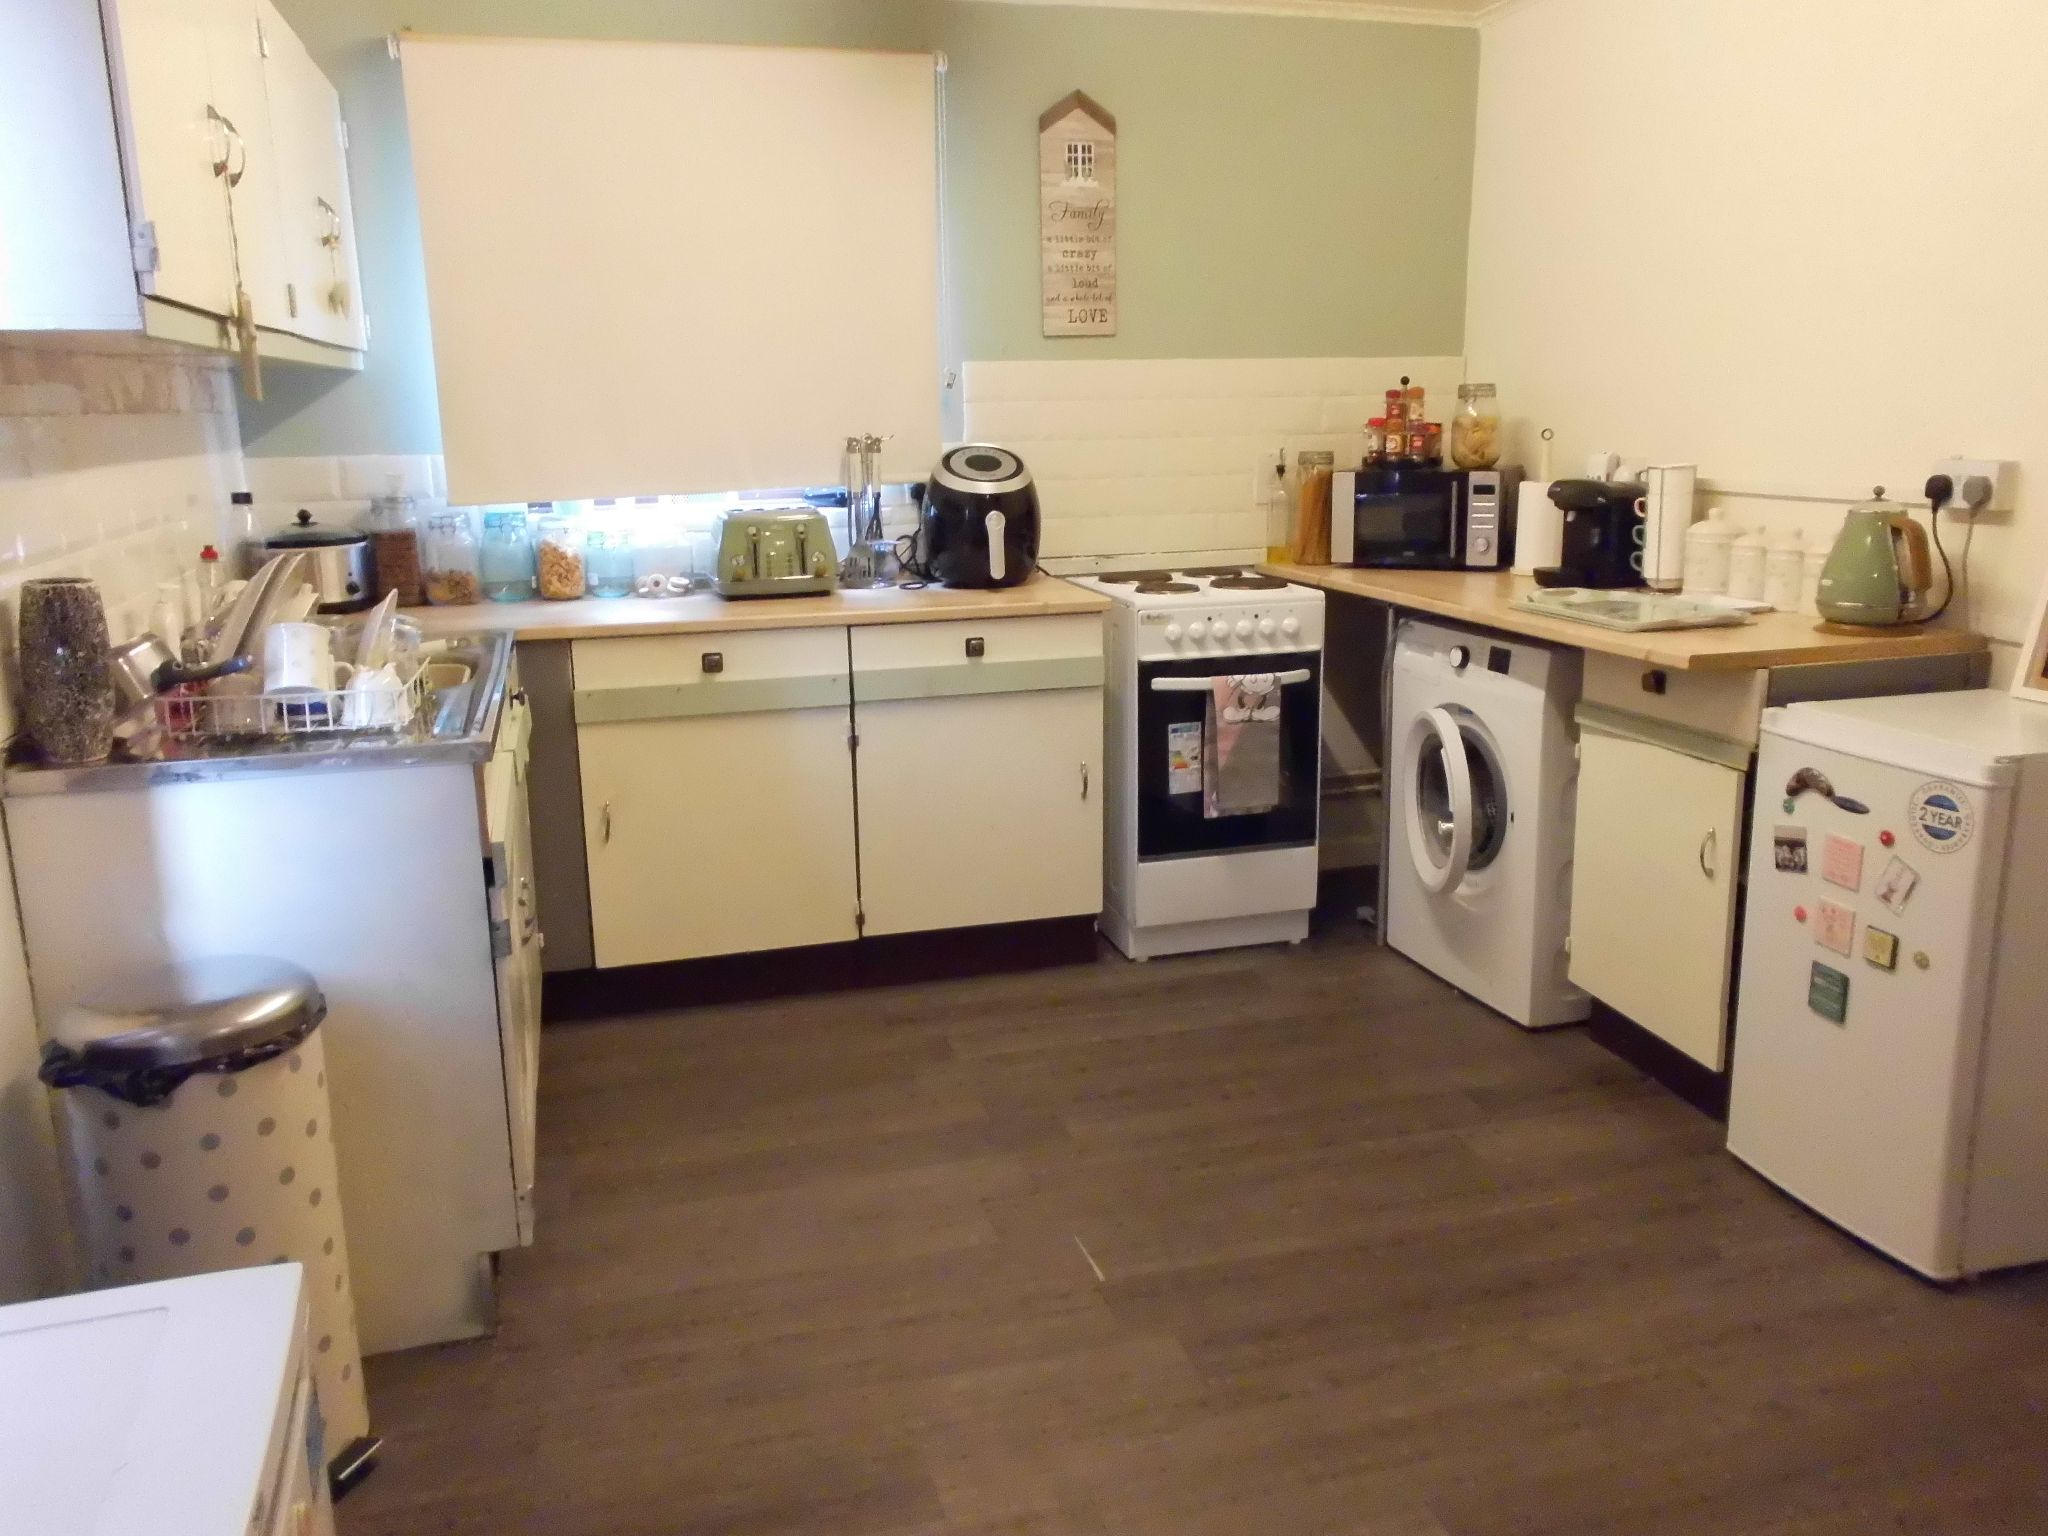 3 bedroom town house For Sale in Leicester - Photograph 6.